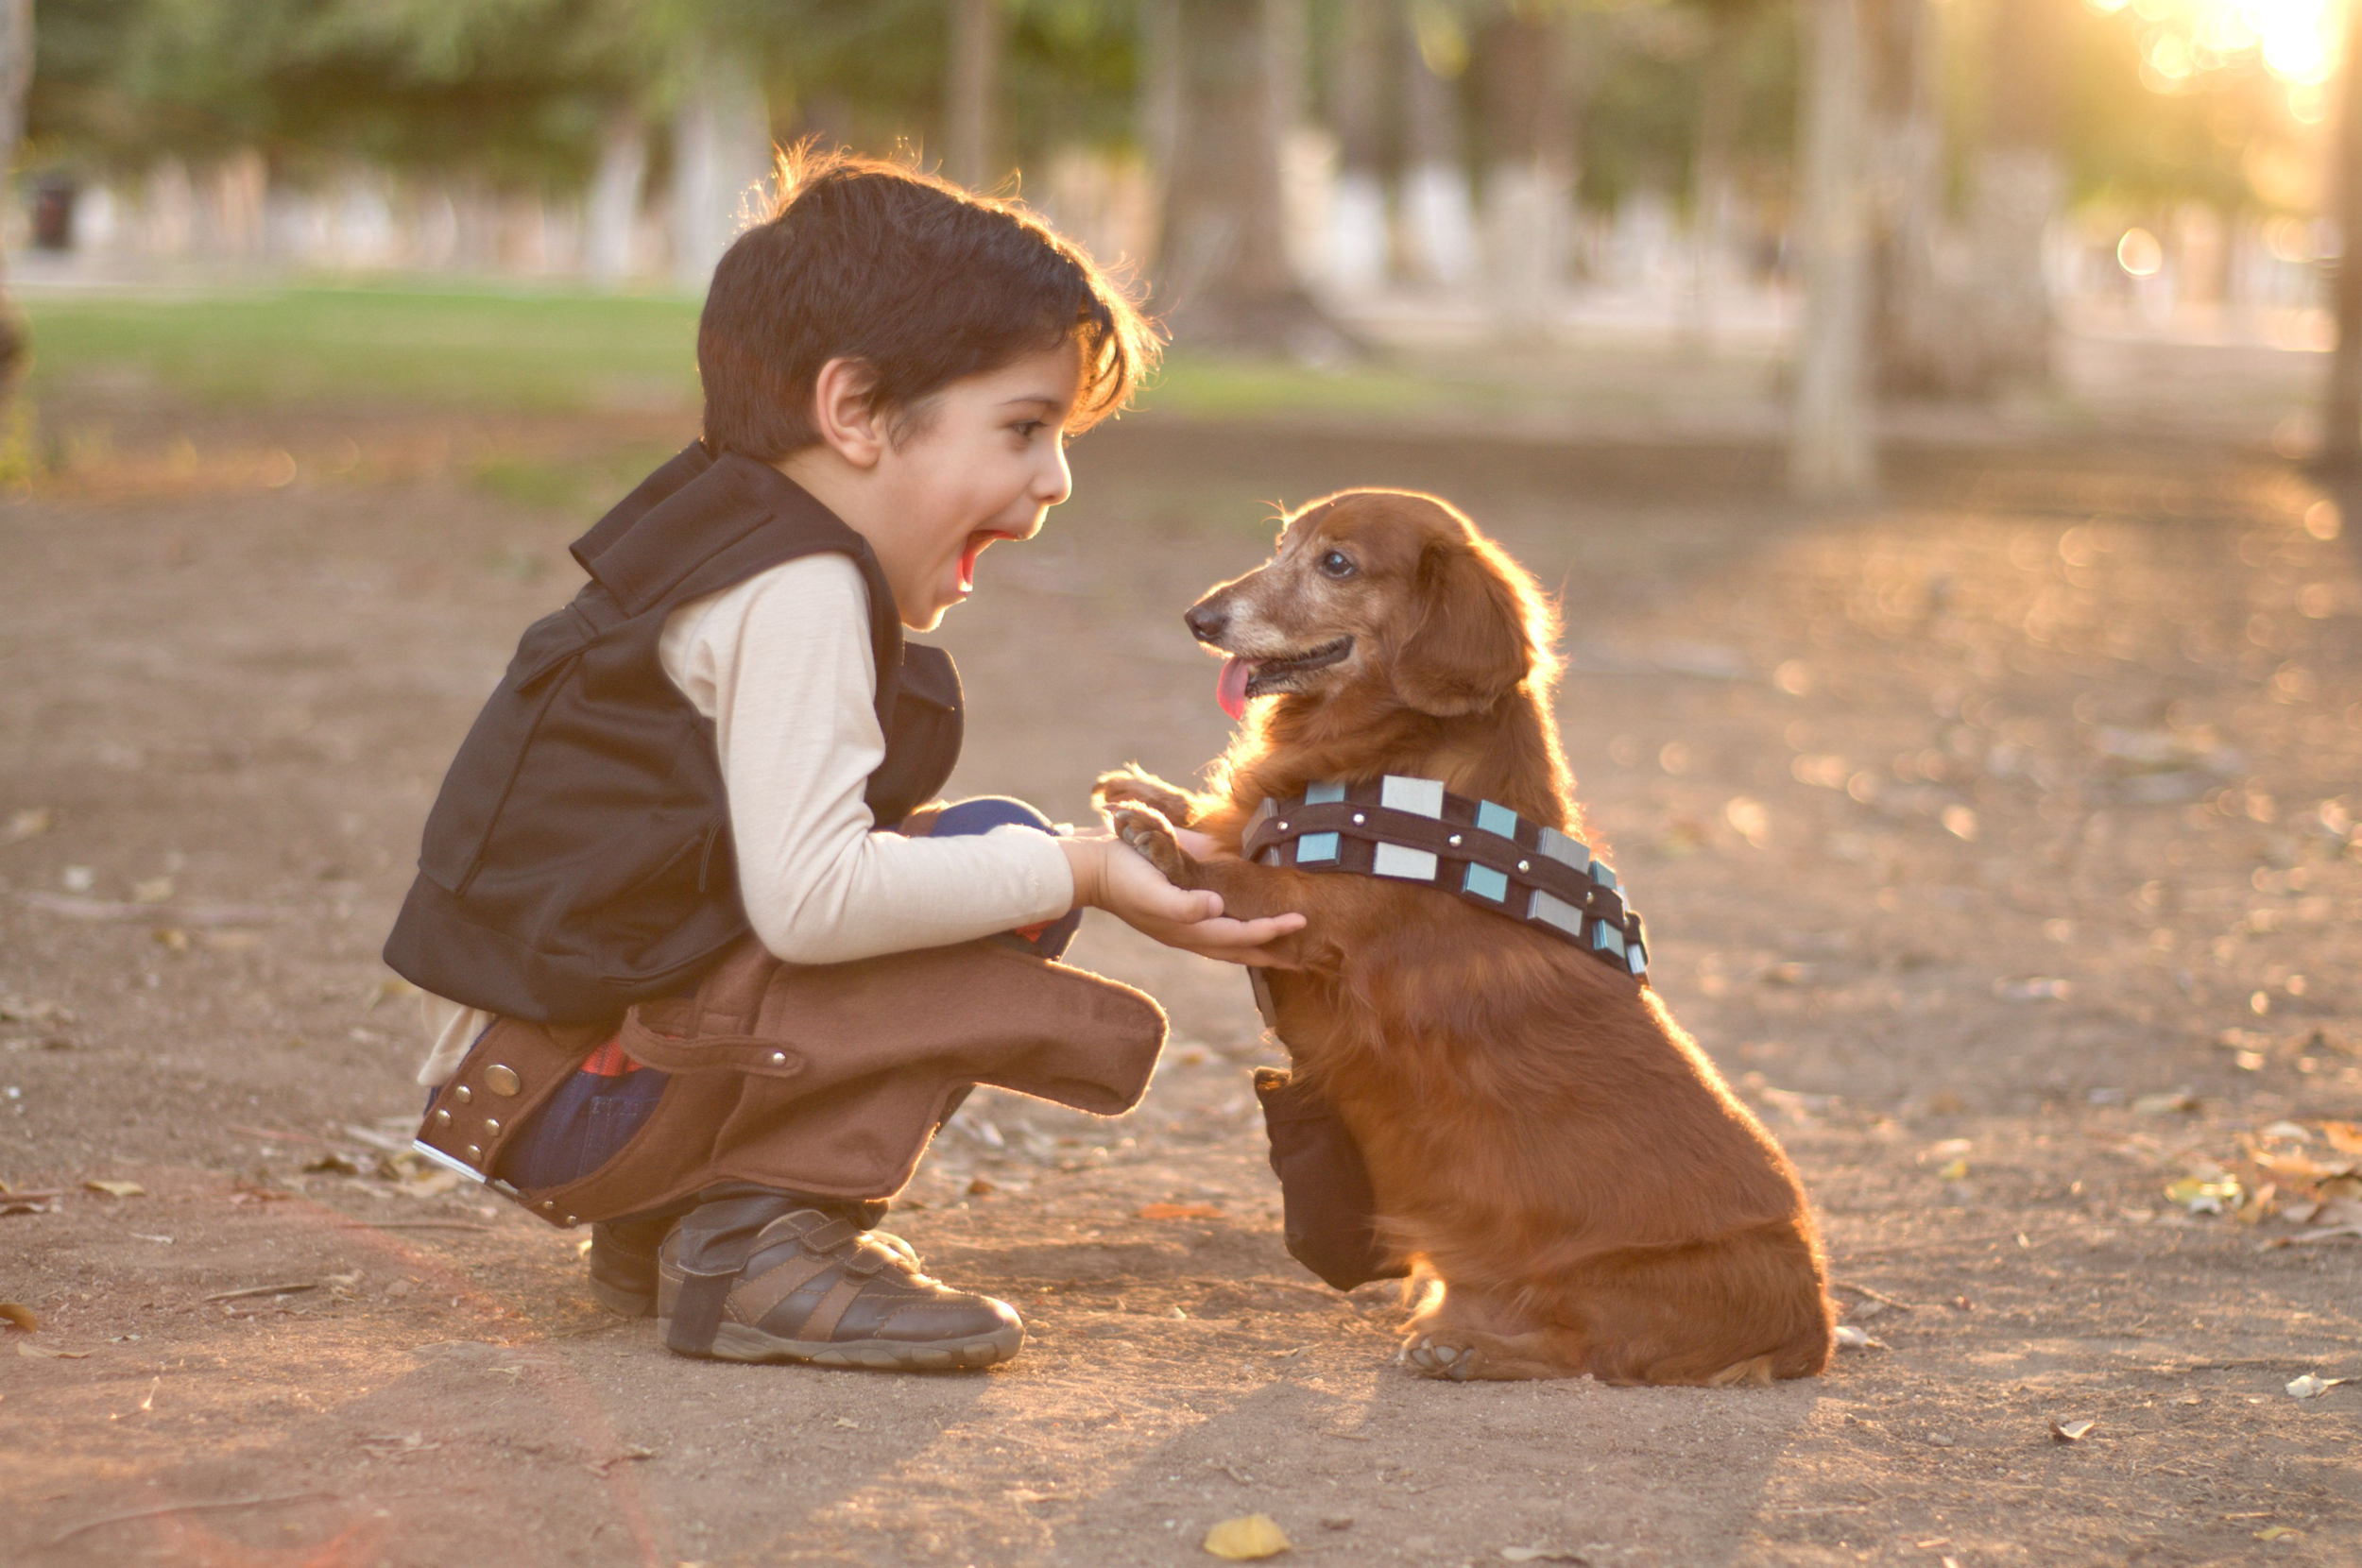 Here's a Reason to Get a Puppy: Kids With Pets Have Less Anxiety